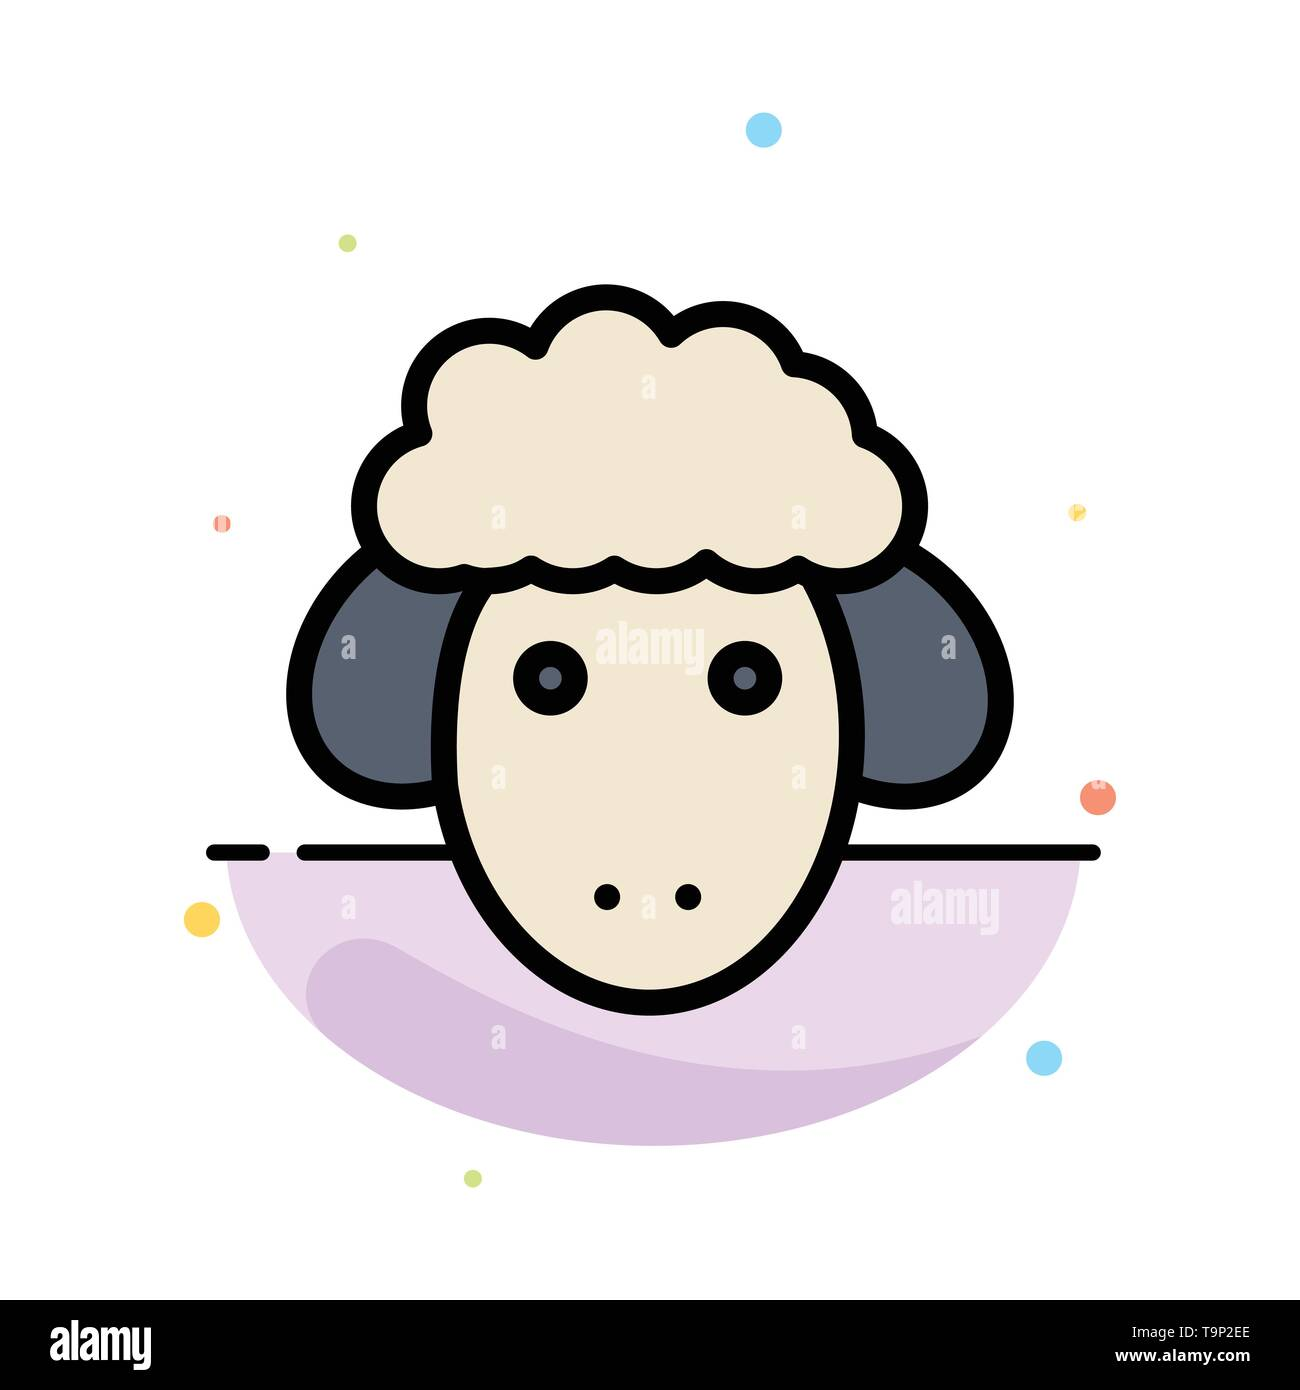 Easter, Lamb, Sheep, Spring Abstract Flat Color Icon Template Stock